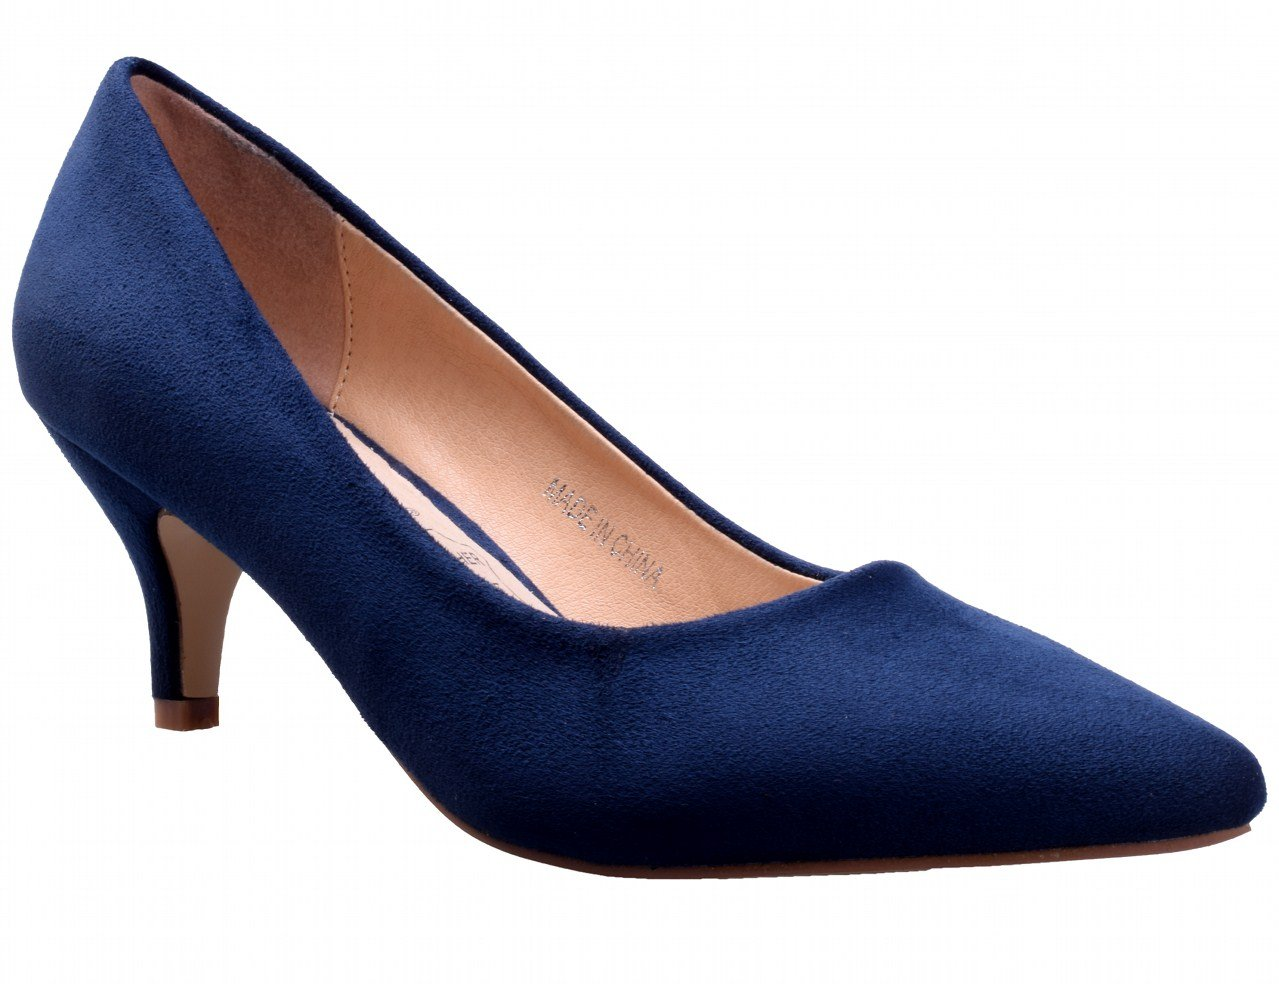 Greatonu Womens Blue Navy Comfort Insole Slip On Pointy Closed Toe Pumps For Women Size 7